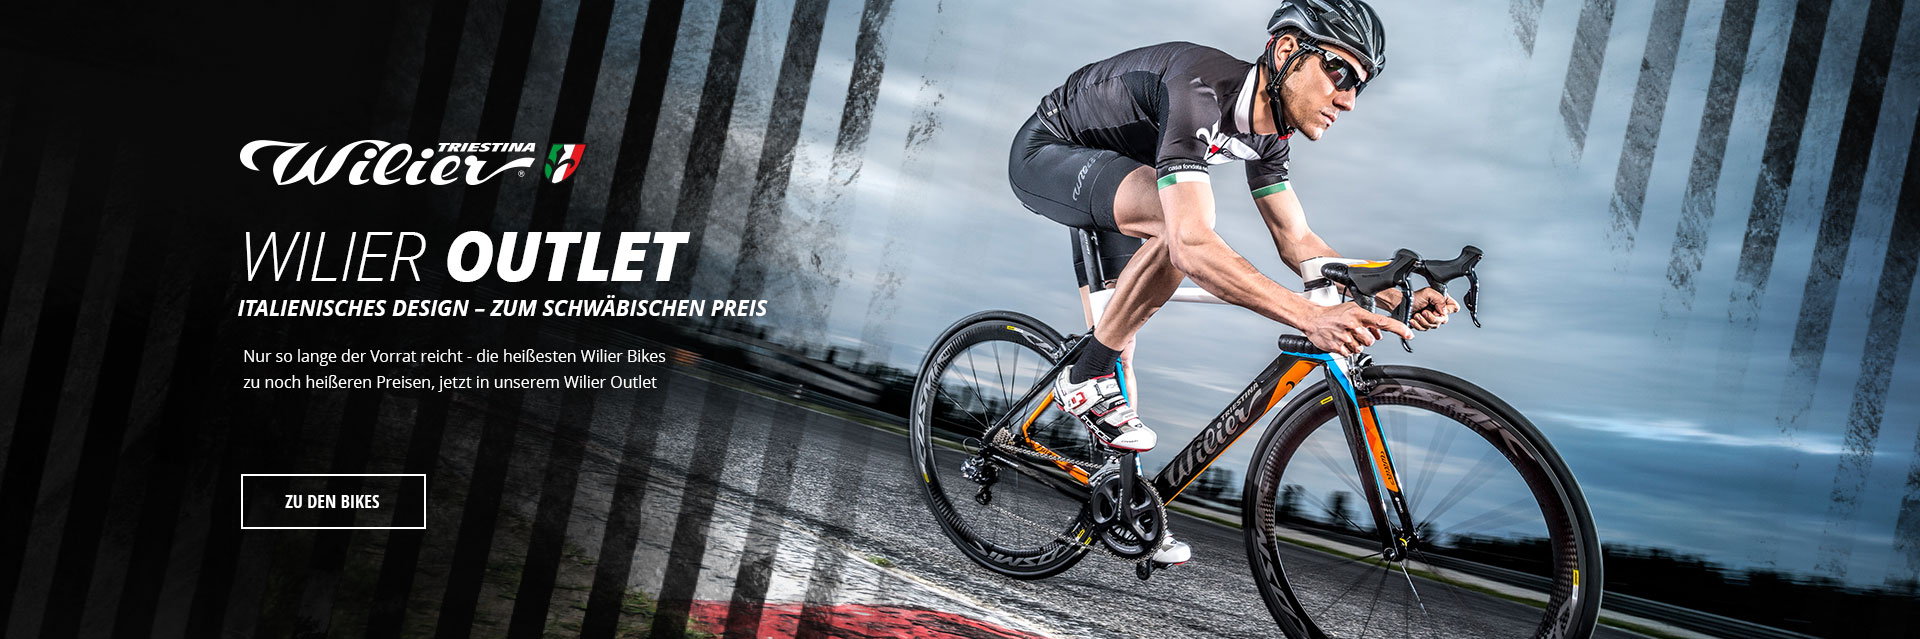 Wilier Outlet